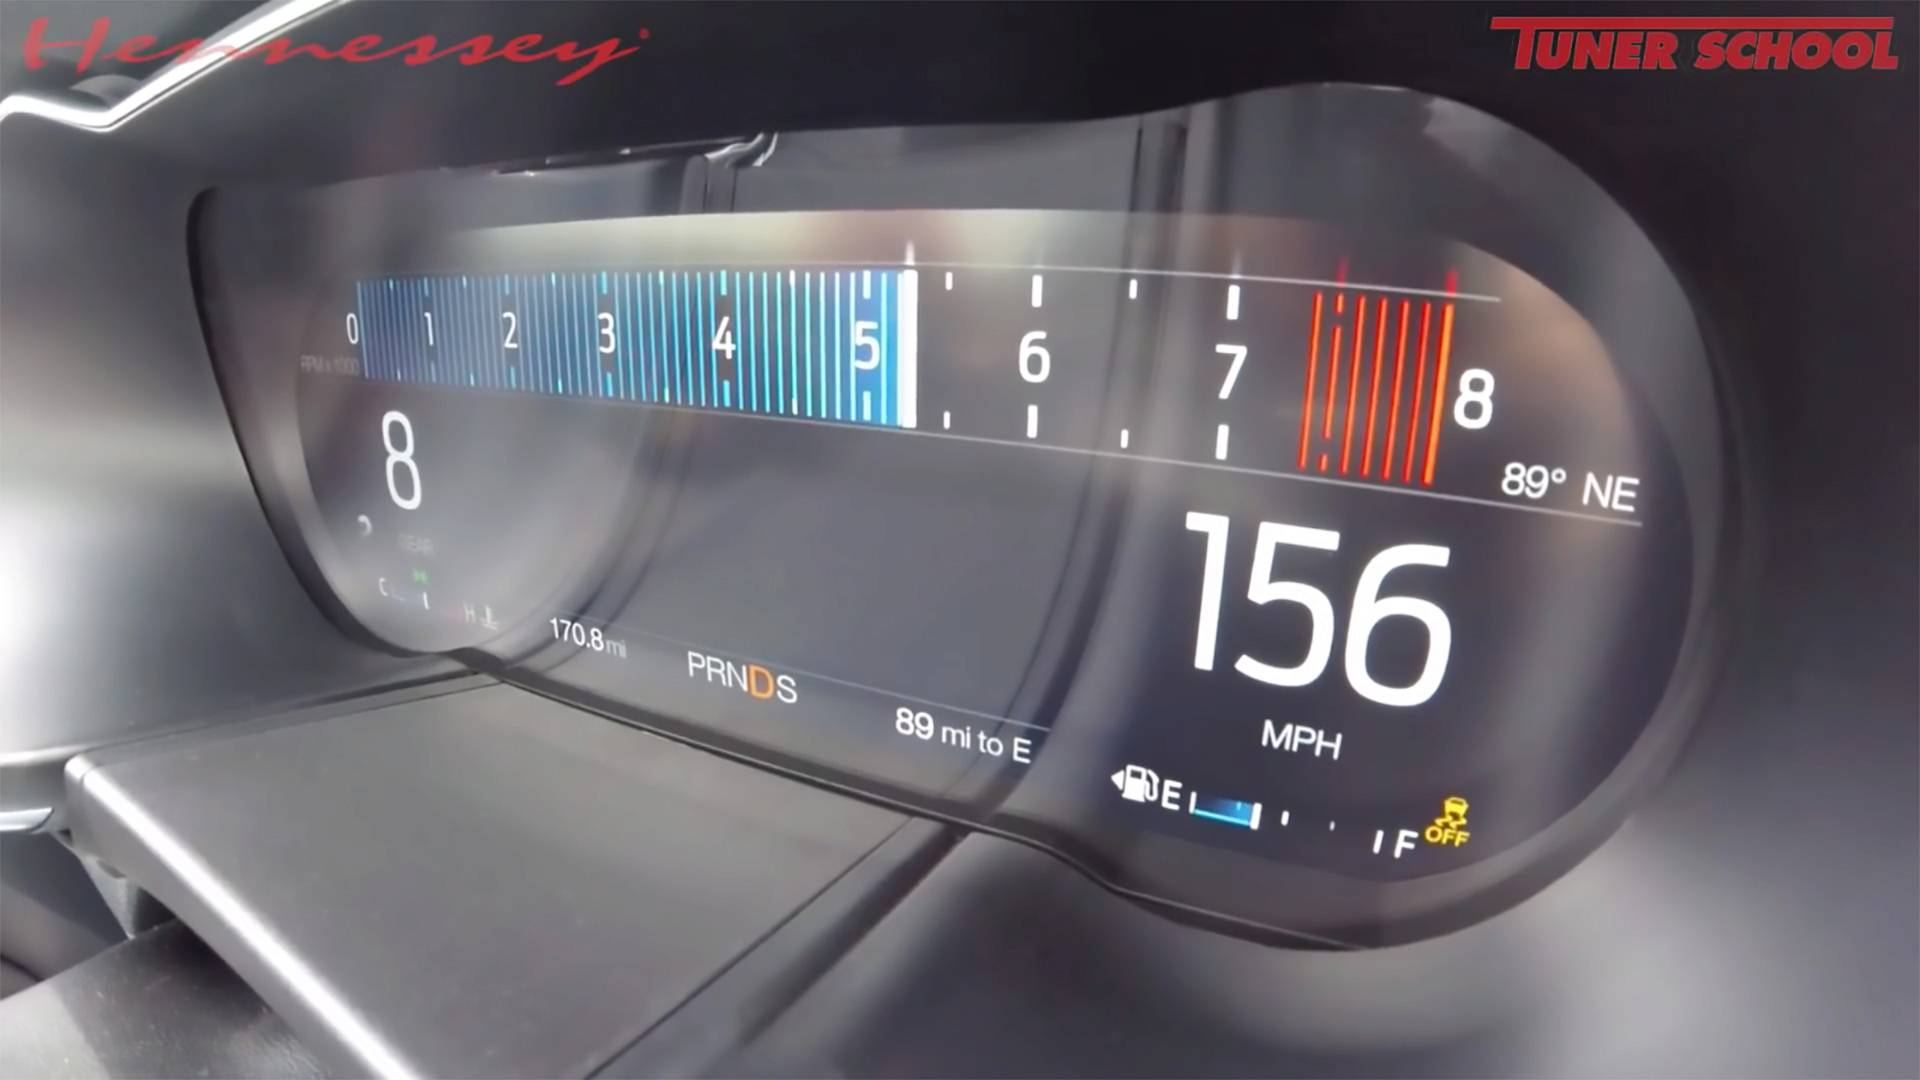 Watch Hennessey's Top Speed Run With 2018 Ford Mustang GT